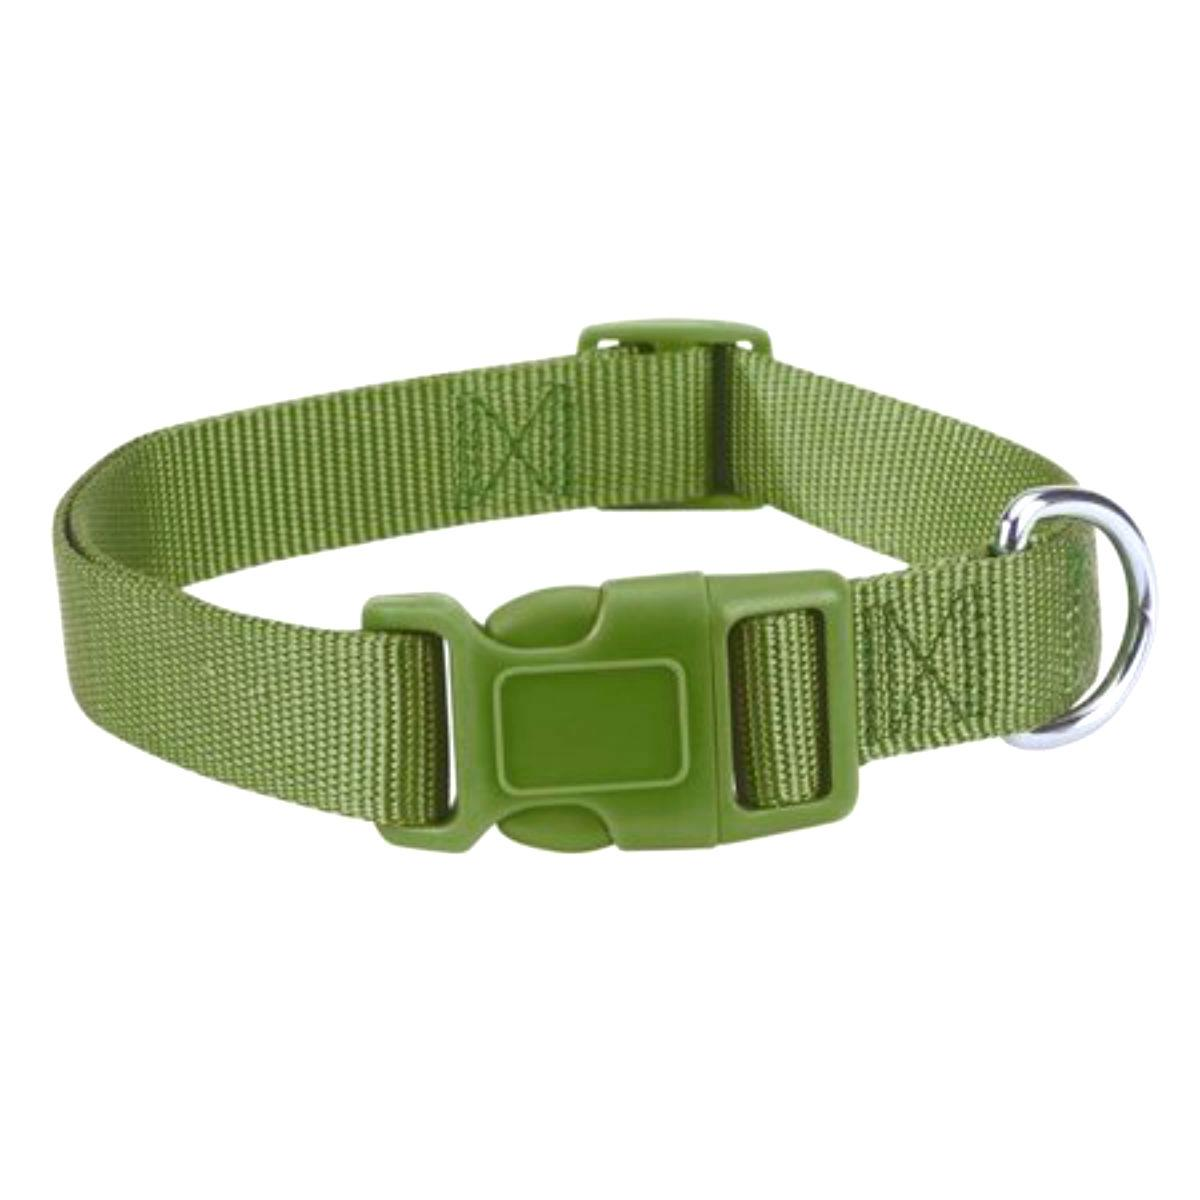 Casual Canine Nylon Dog Collar - Parrot Green